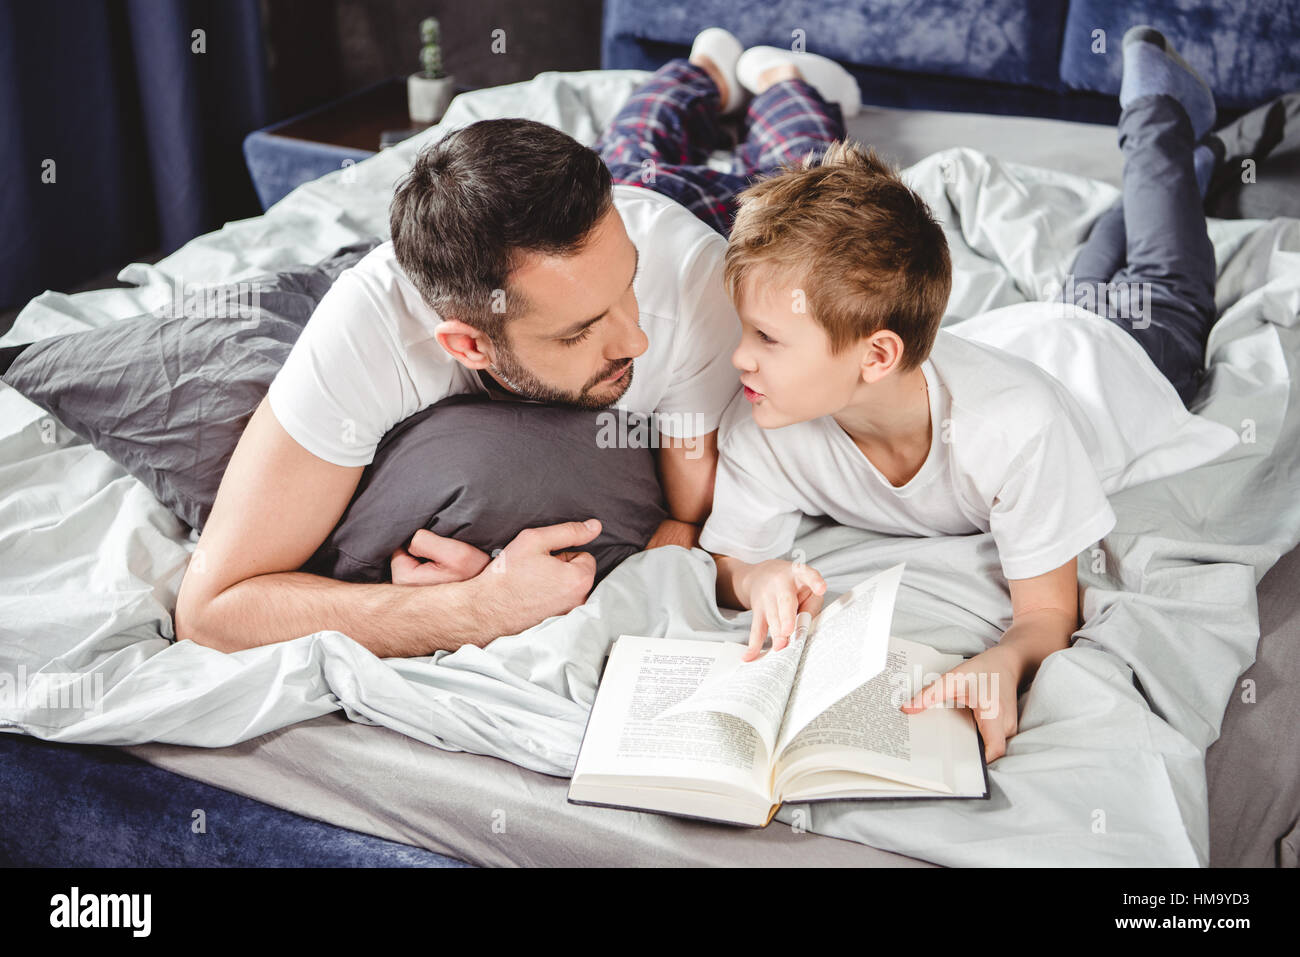 Father and son reading book - Stock Image